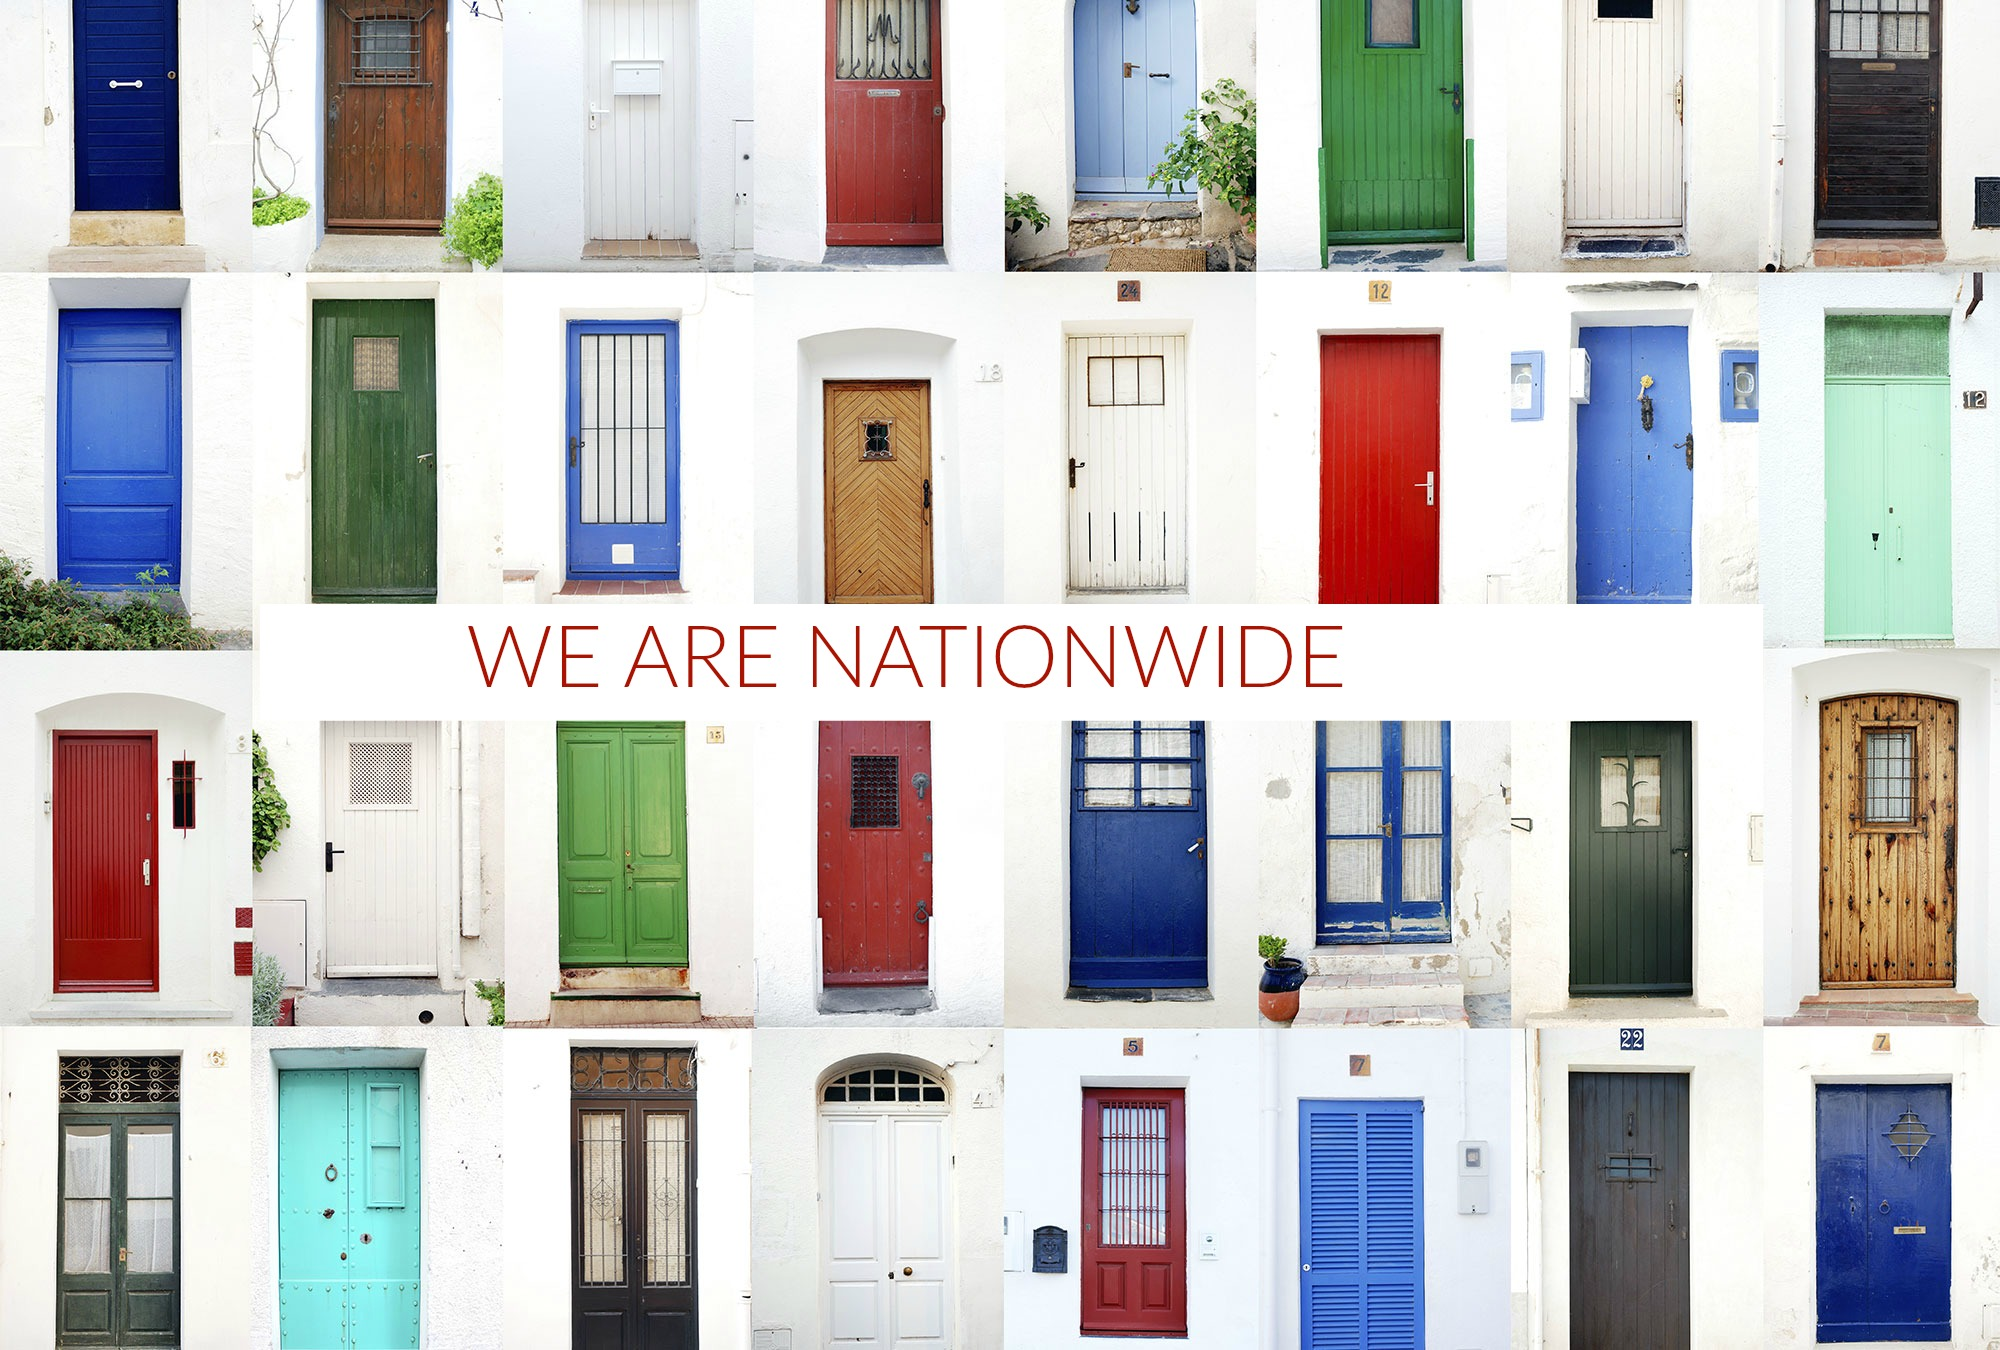 colorful doors on top of each other, interventions nationwide